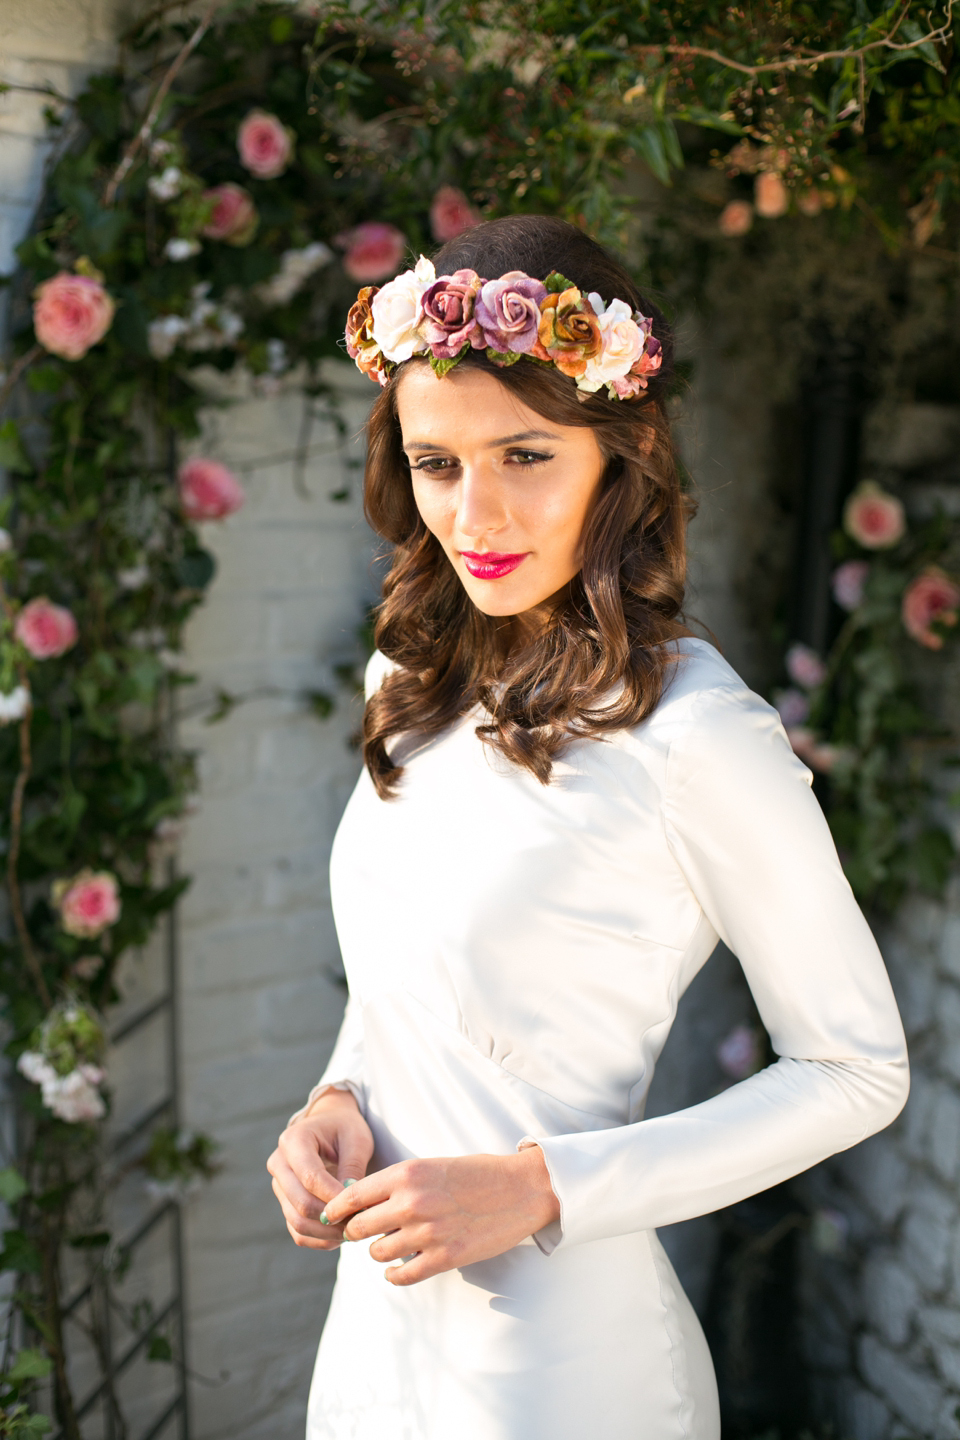 Maids to Measure Launches 'Vintage Maids' (Bridal Fashion )